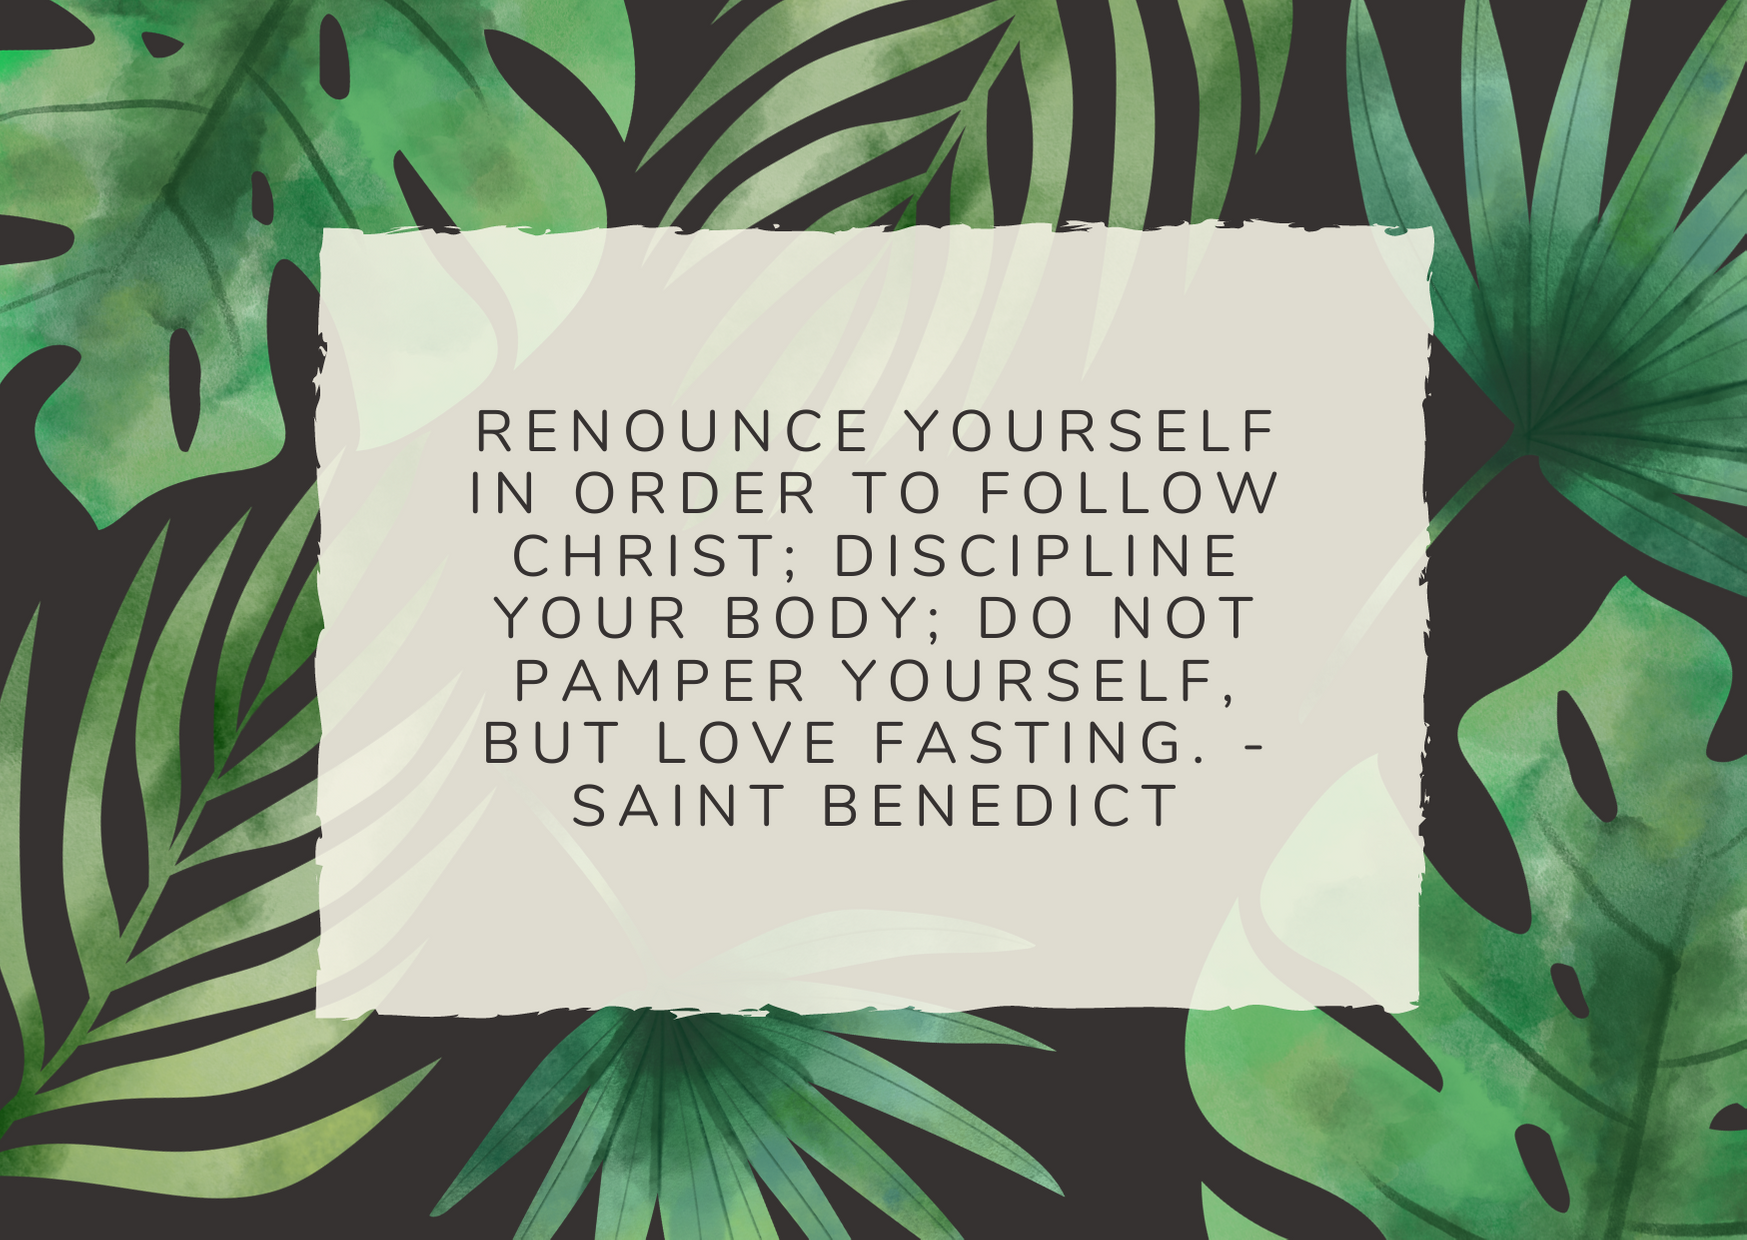 Renounce yourself in order to follow Christ; discipline your body; do not pamper yourself, but love fasting. - Saint Benedict